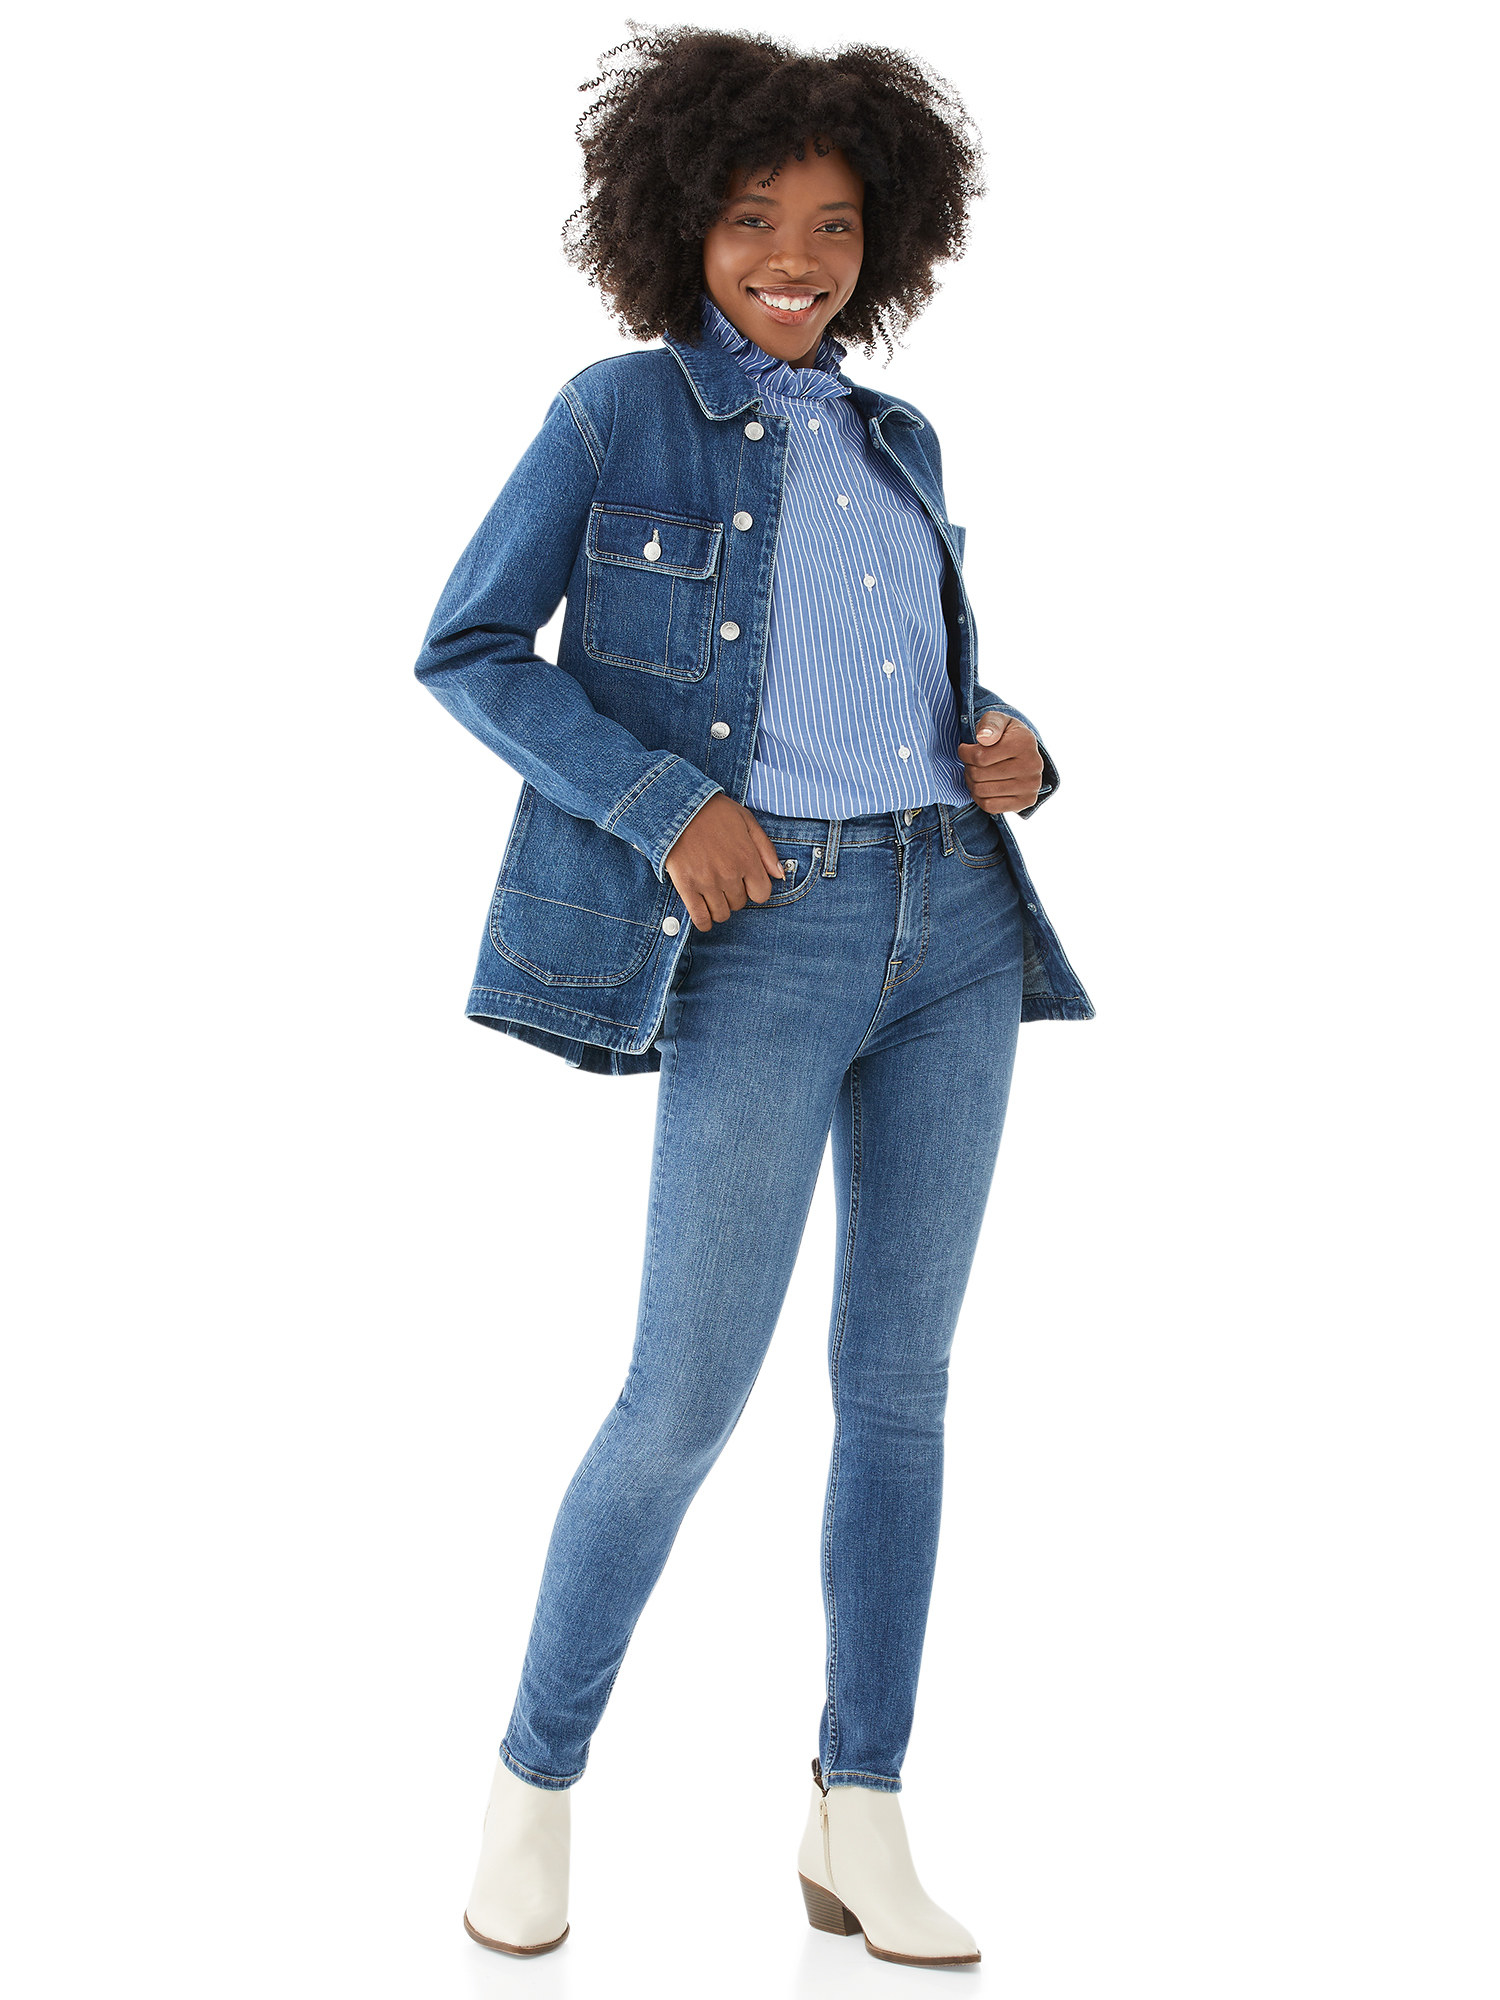 Model wears high rise skinny jeans with white booties and a denim jacket